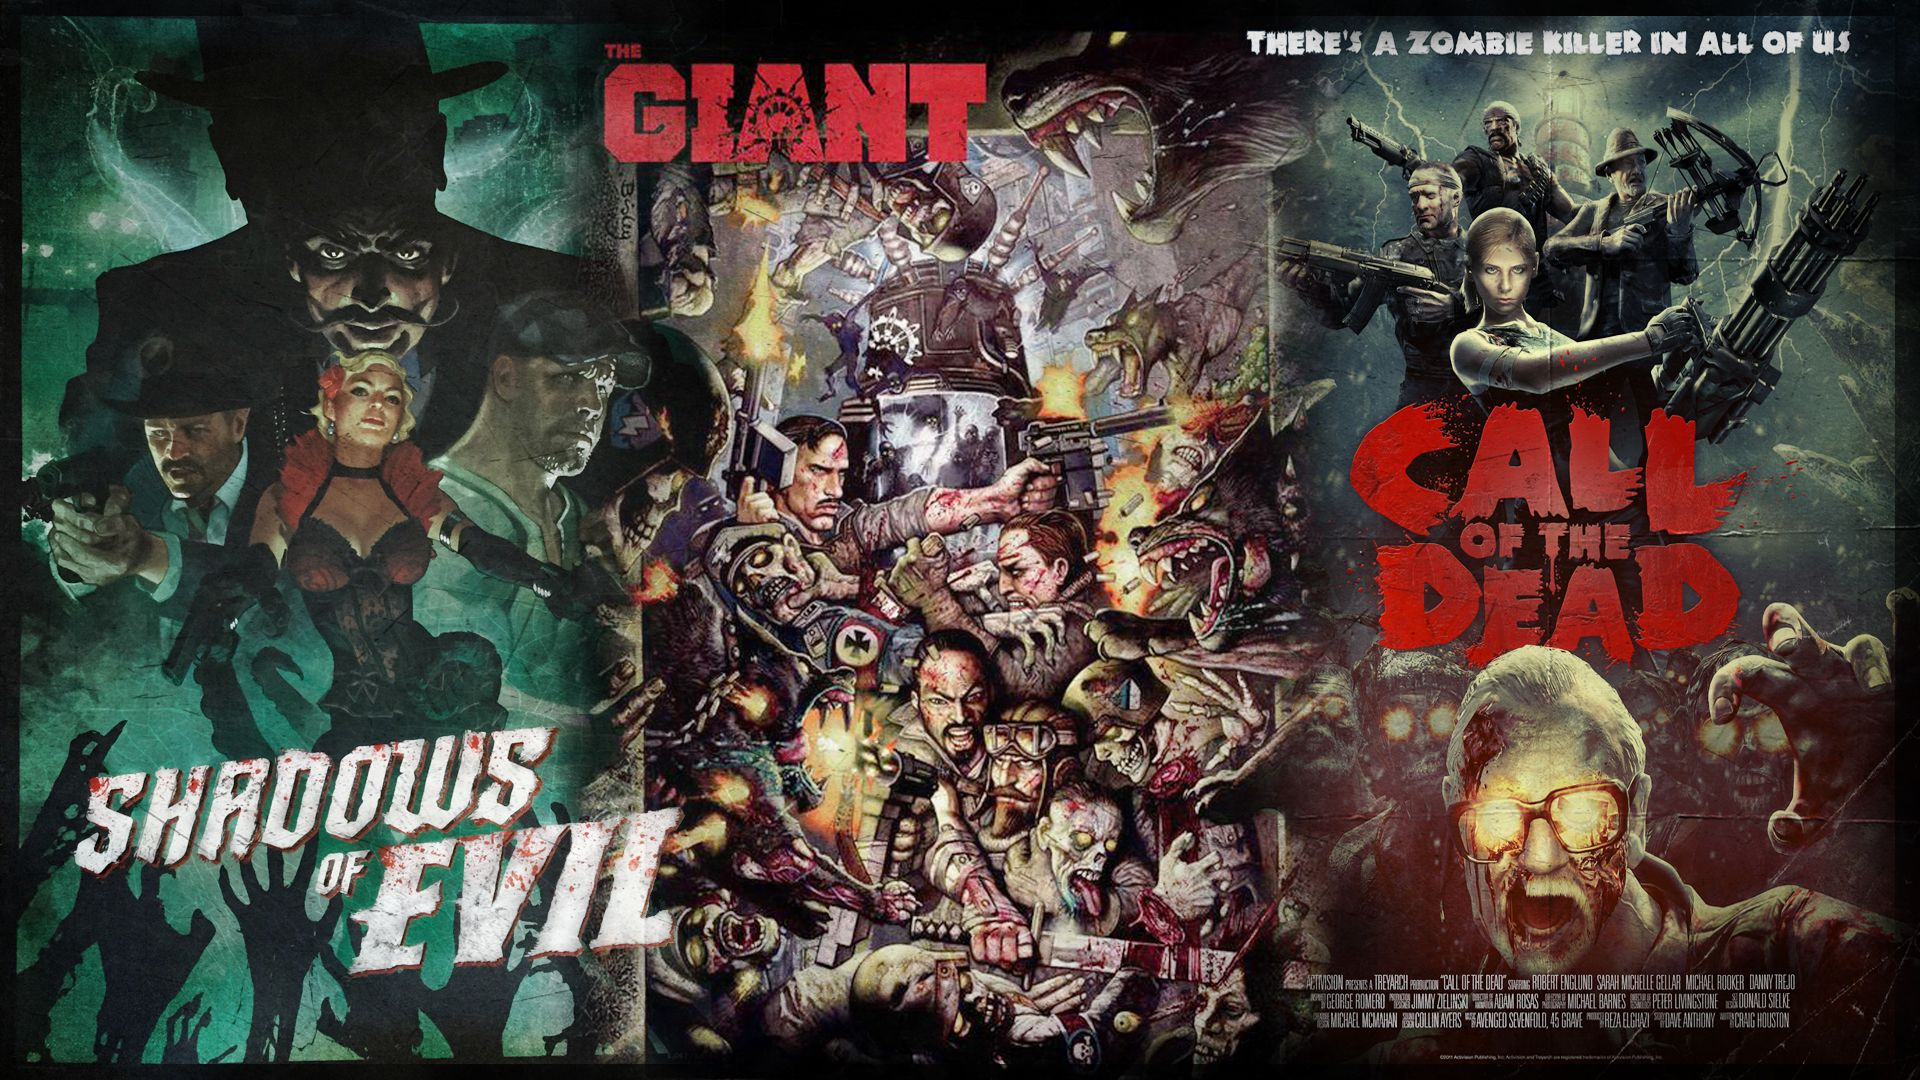 call of duty zombie wallpaper, shadows of evil, the giant, call of